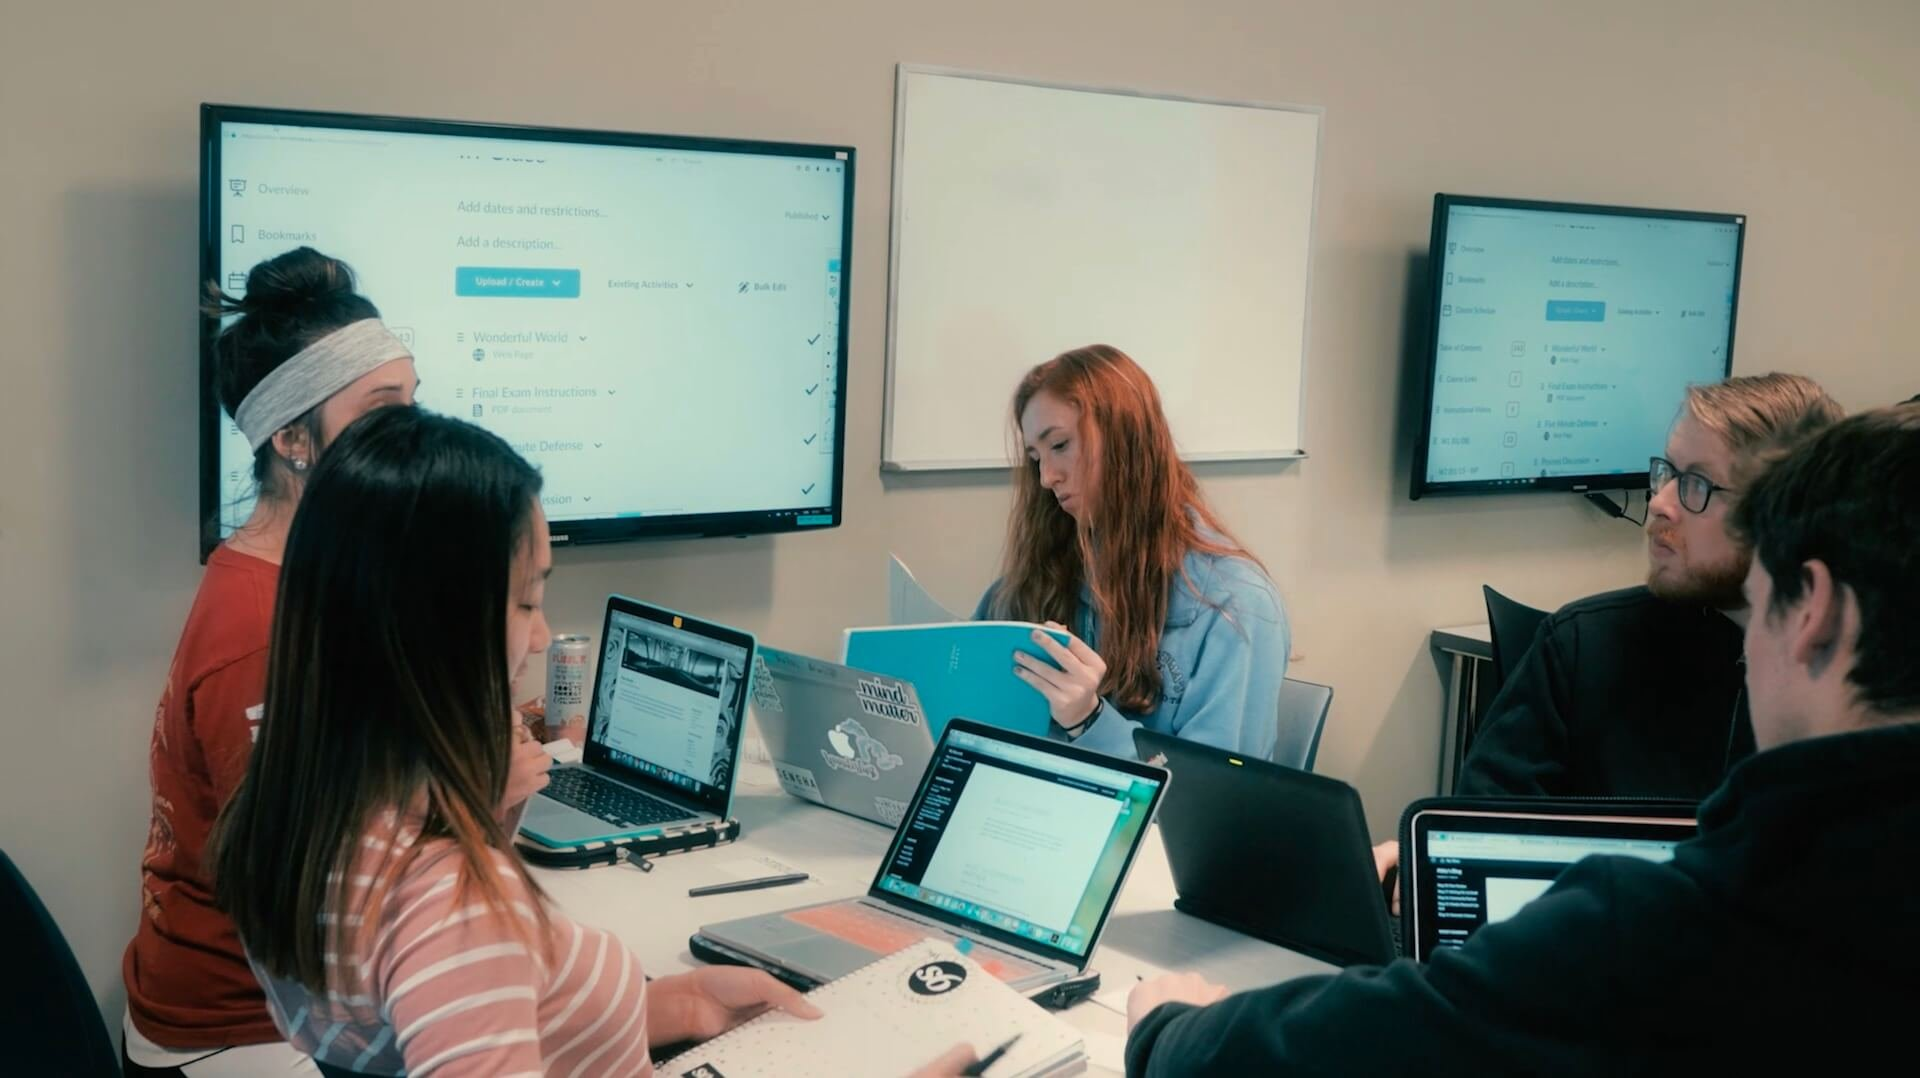 Students stream wirelessly to two different screens inside of a learning space